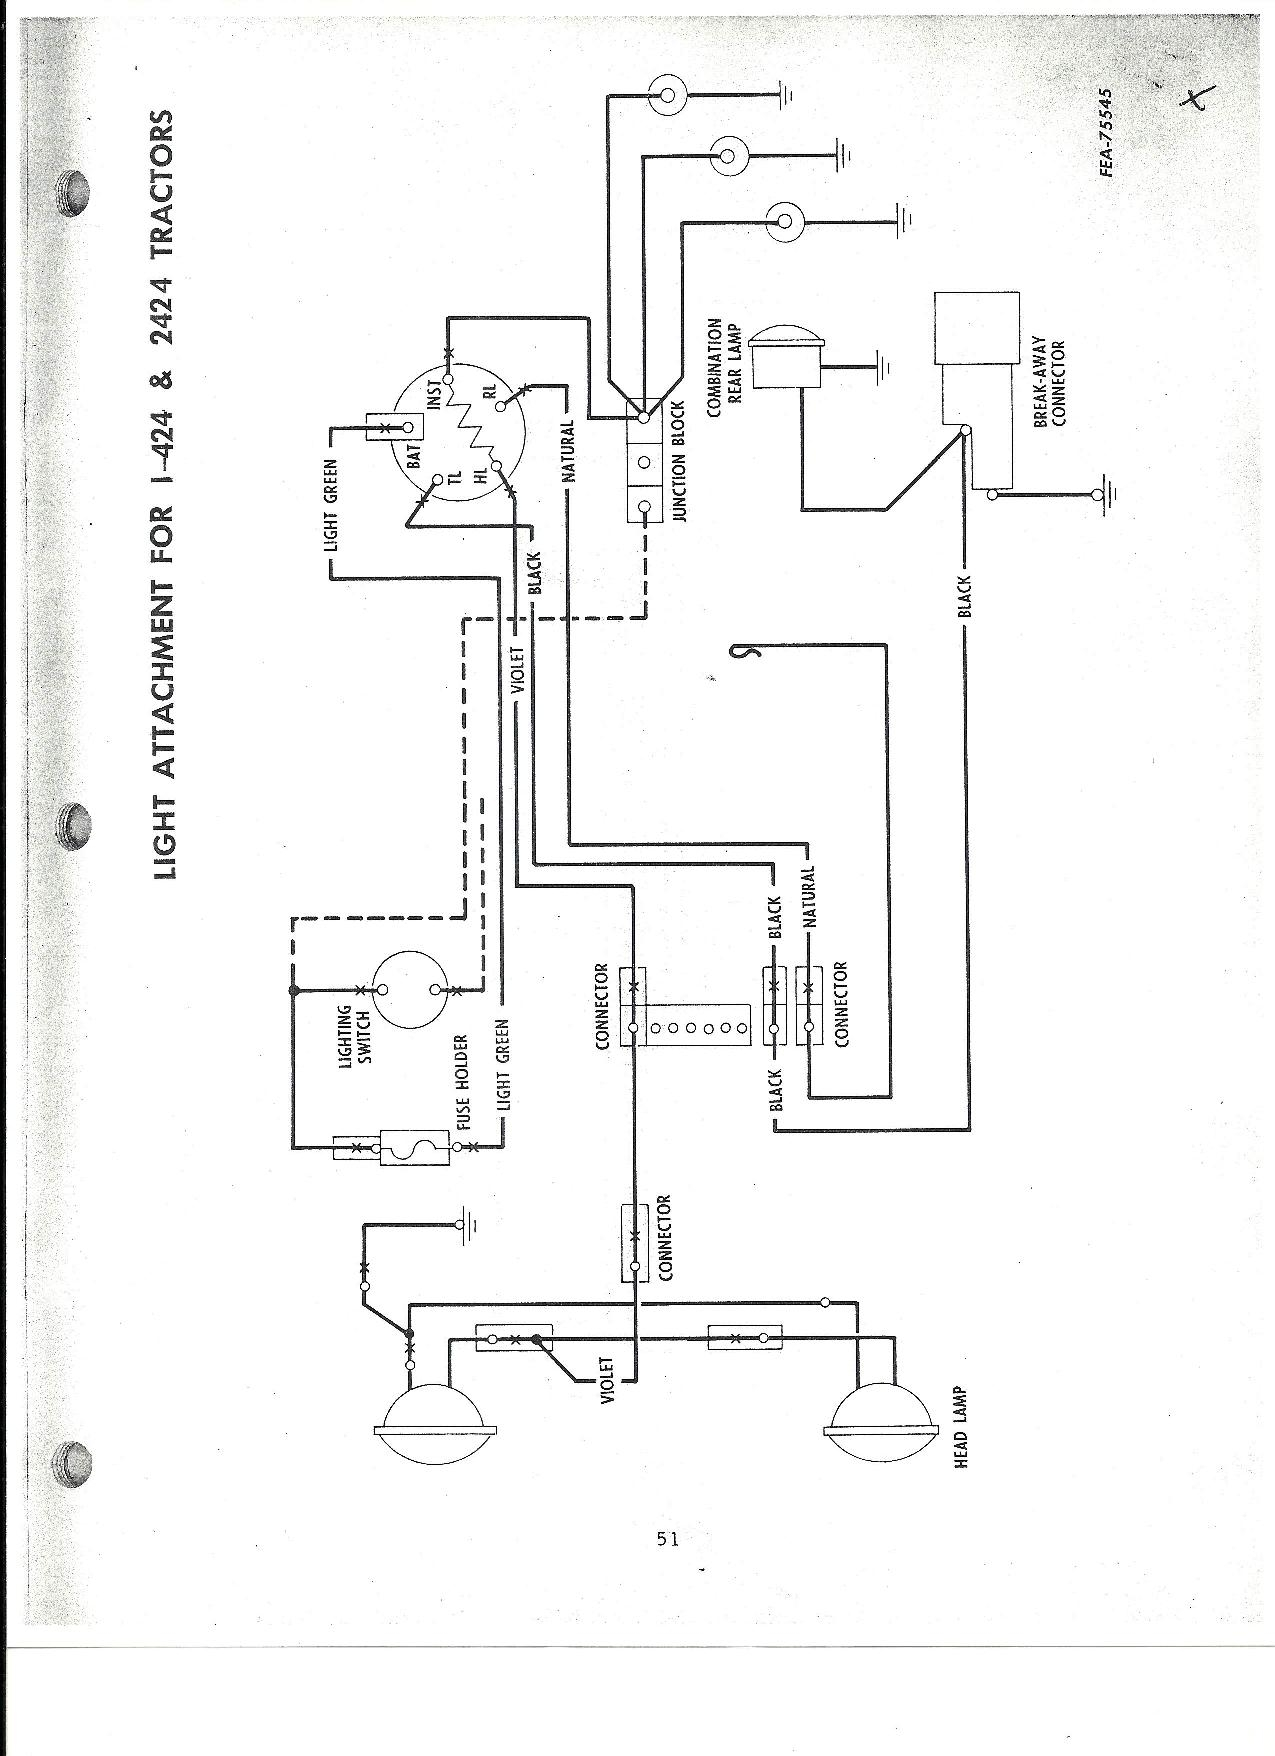 ih 444 tractor wiring diagram    ih       444    diesel    wiring    general    ih    red power magazine     ih       444    diesel    wiring    general    ih    red power magazine